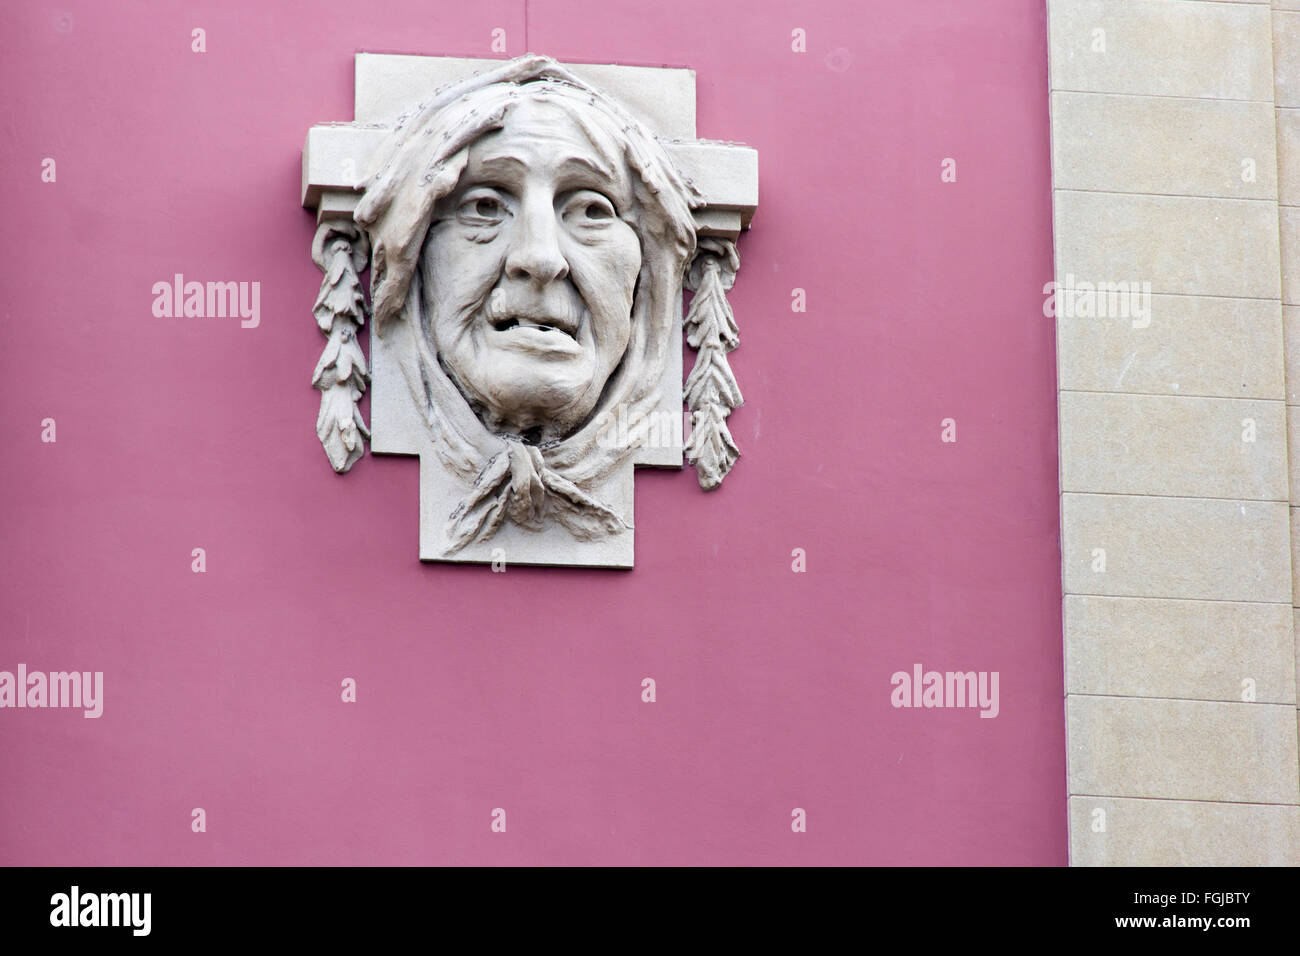 countenance, visage, phiz, mug, frontispiece, feature, muz, face, appearence, wall, sculpture, carving, sculp, pink, - Stock Image